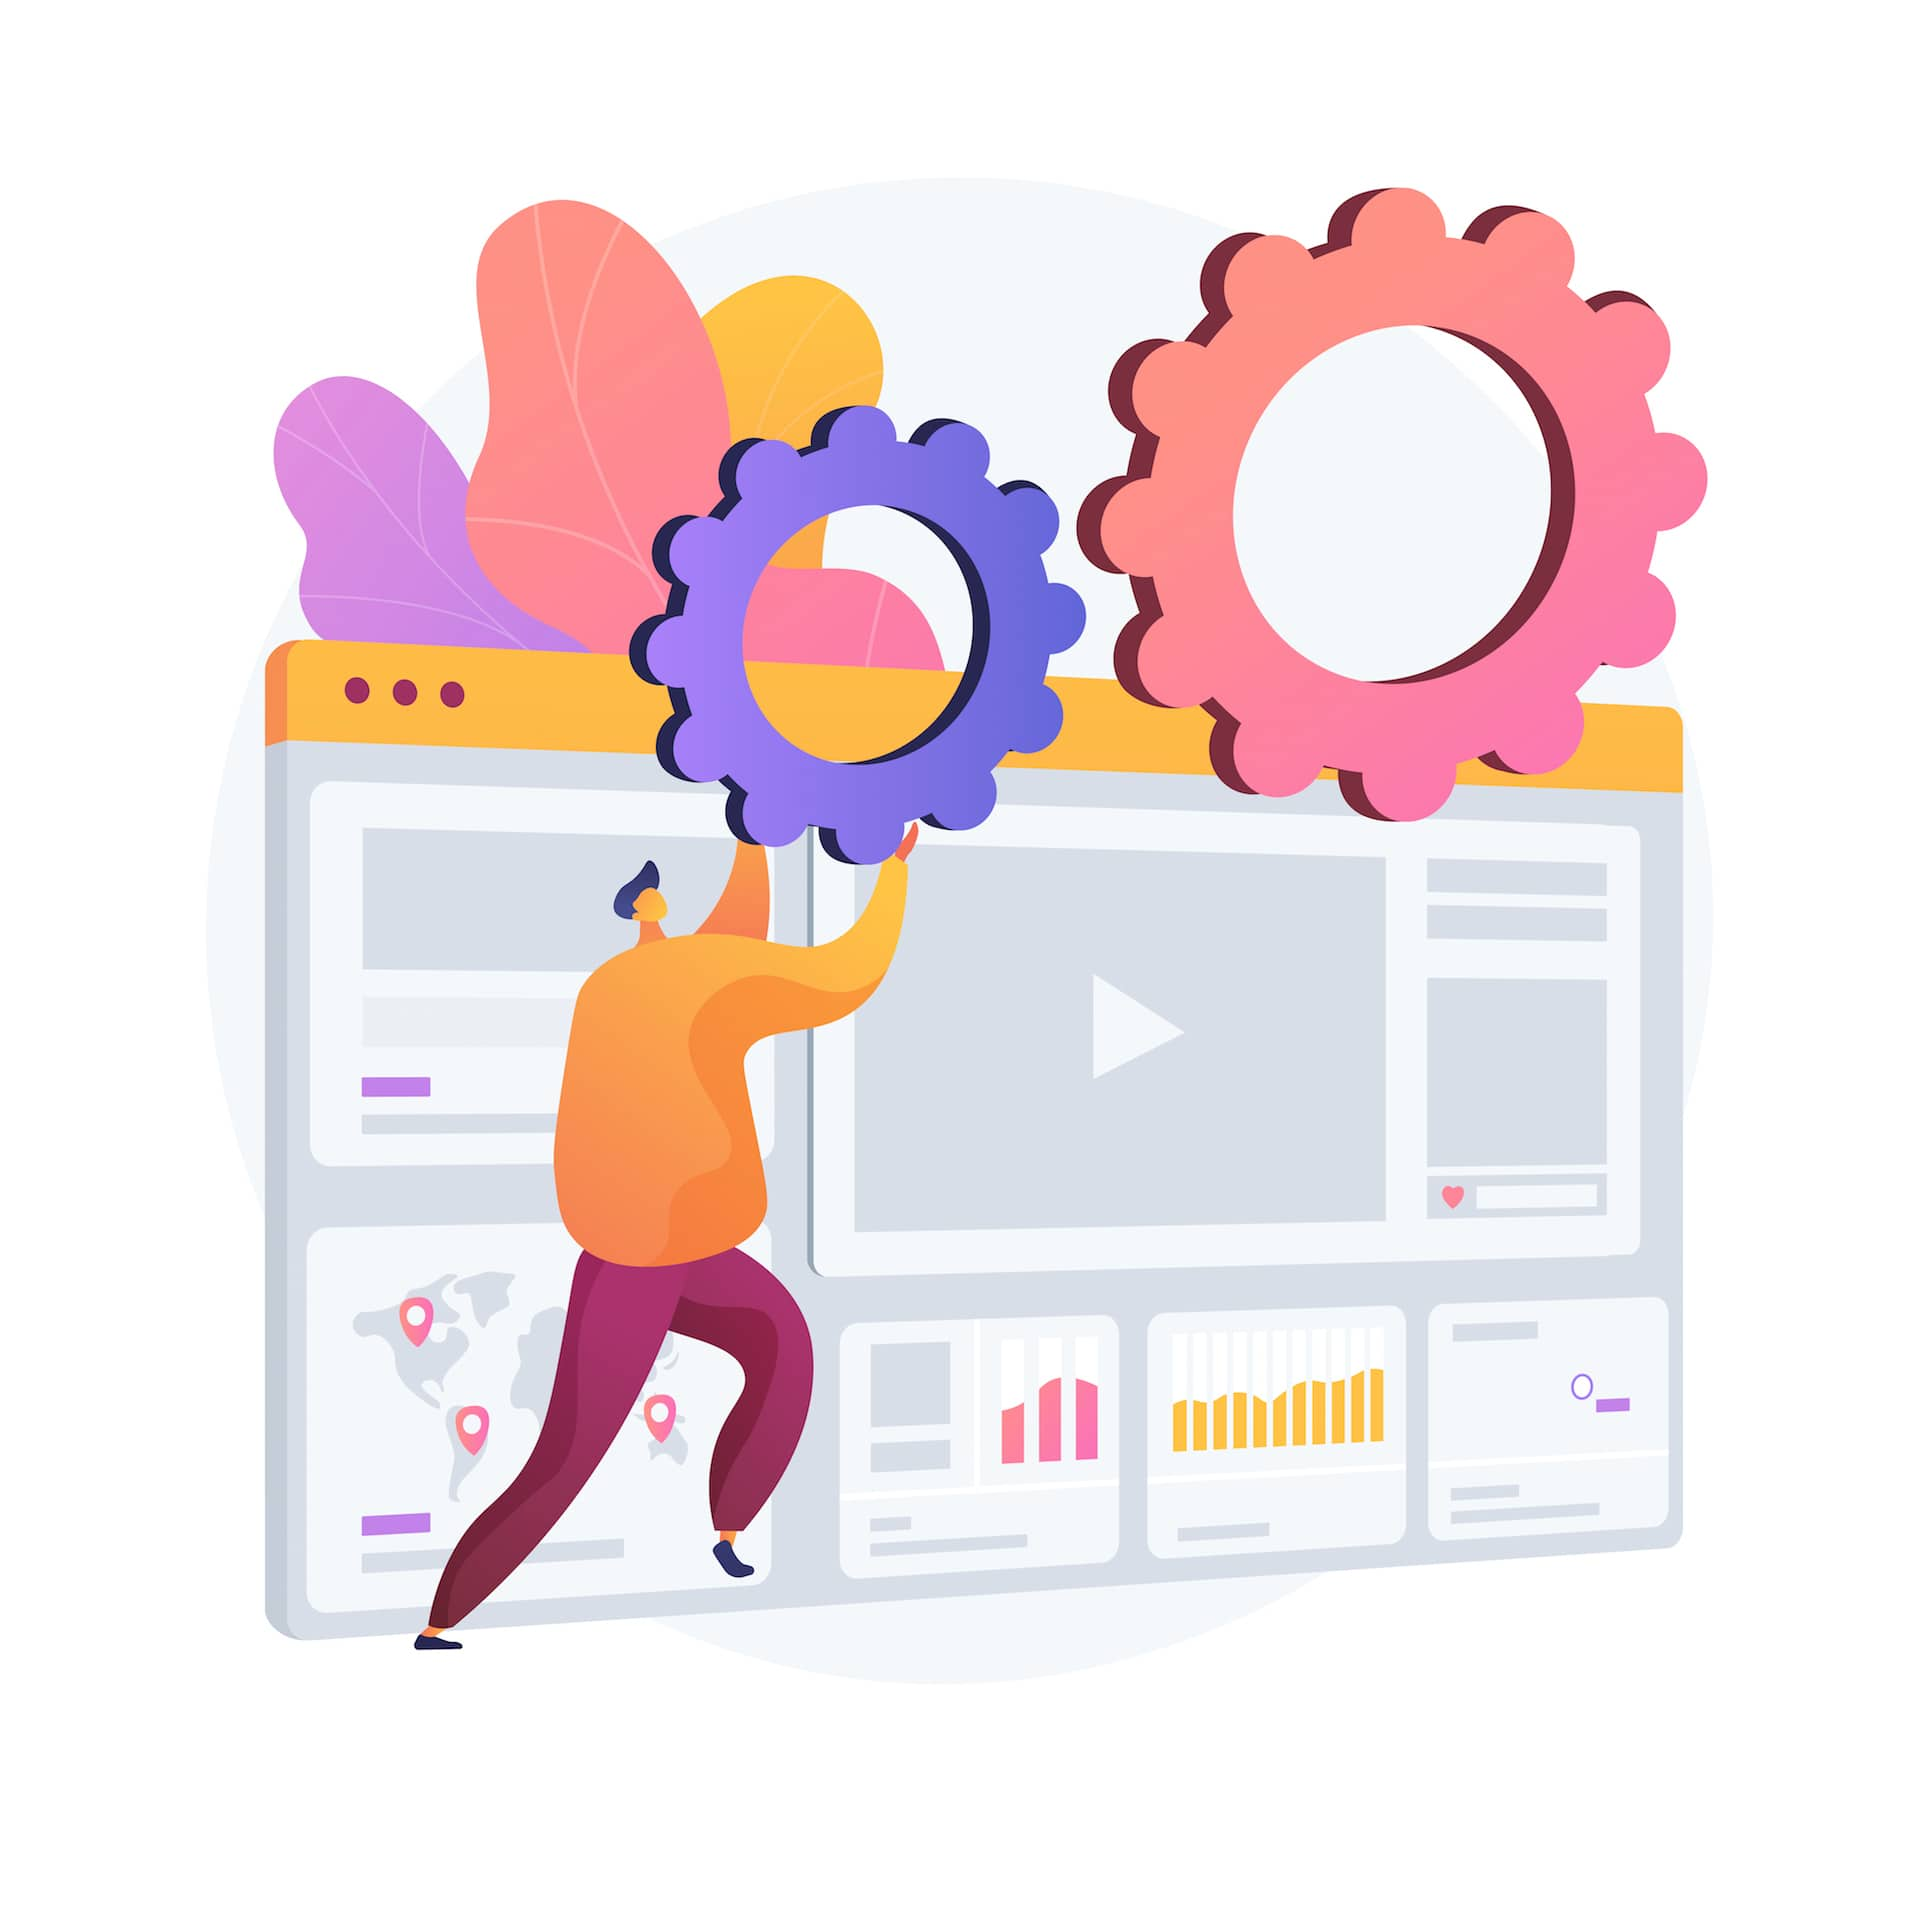 seo tutorial, SEO Tutorial: All You Need to Know in 2021 [Insights & Trends]  SEO Tutorial: All You Need to Know in 2021 [Insights & Trends] seo tools for keyword research